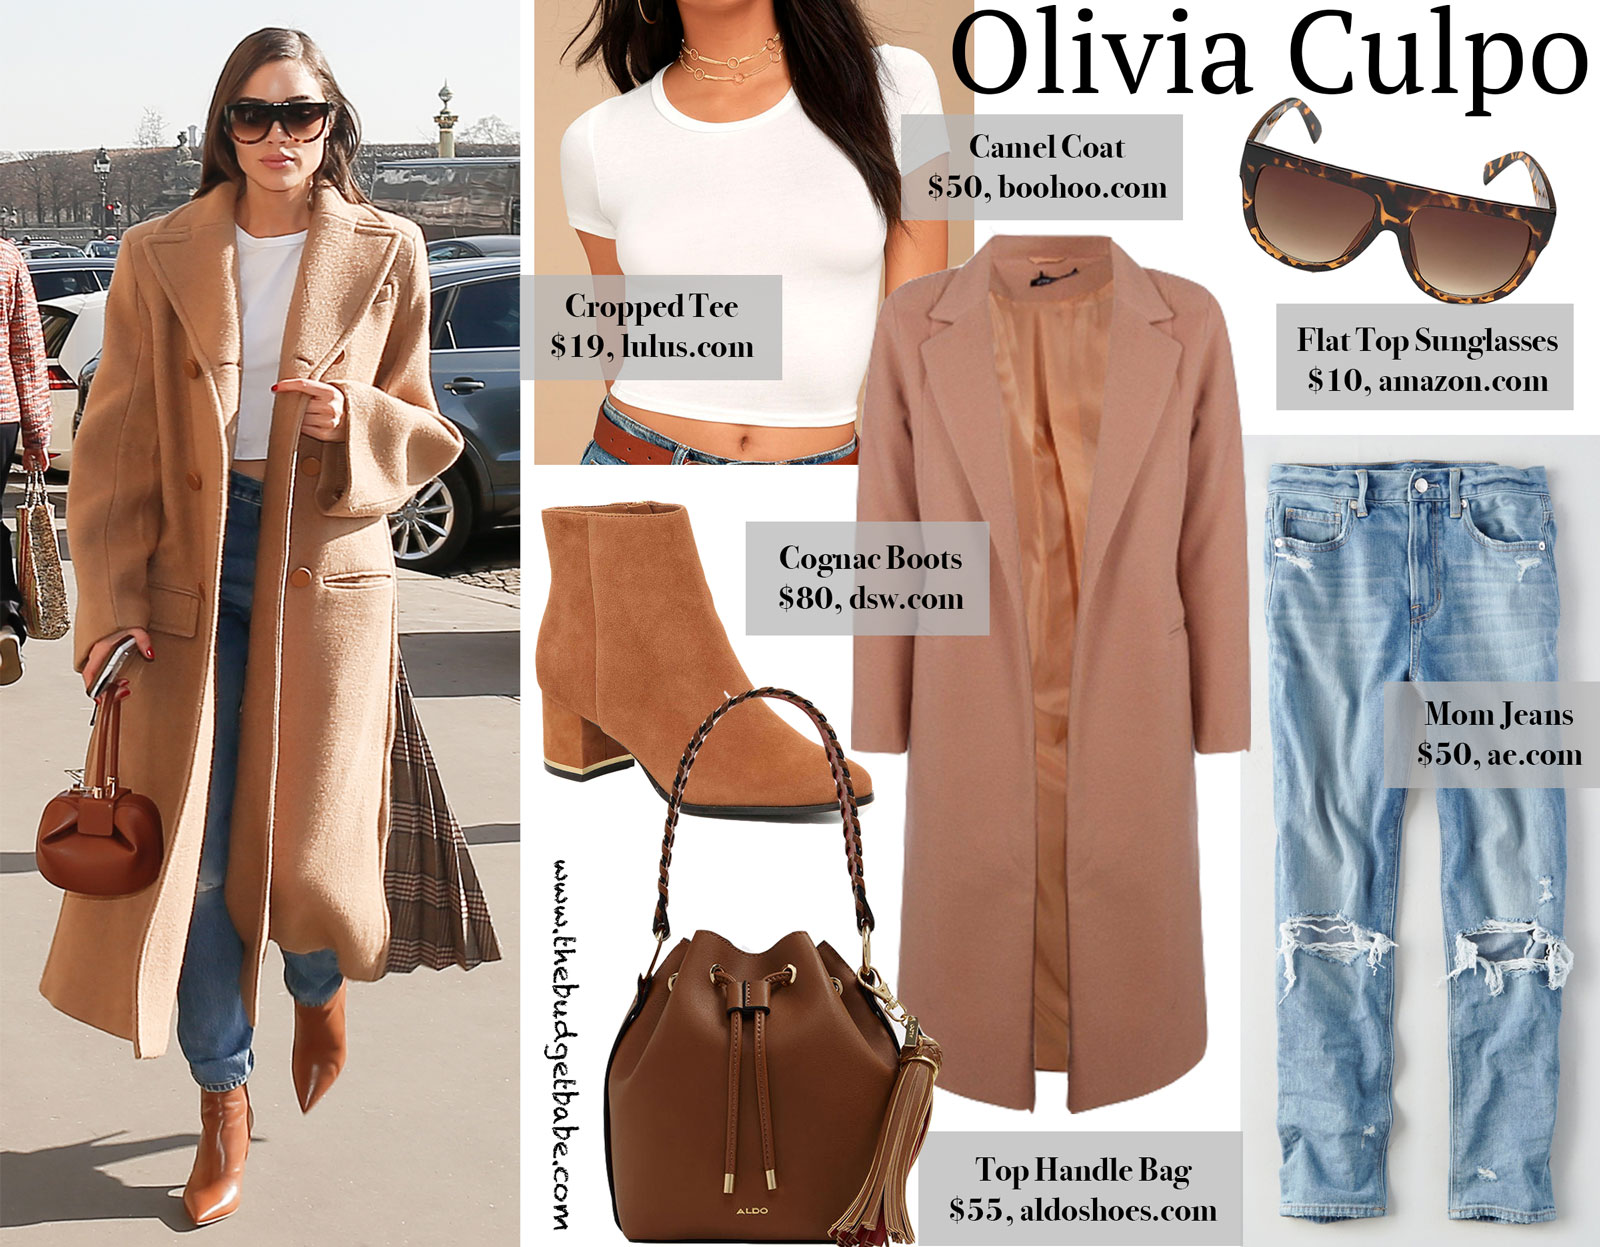 Olivia Culpo Camel Coat Look for Less